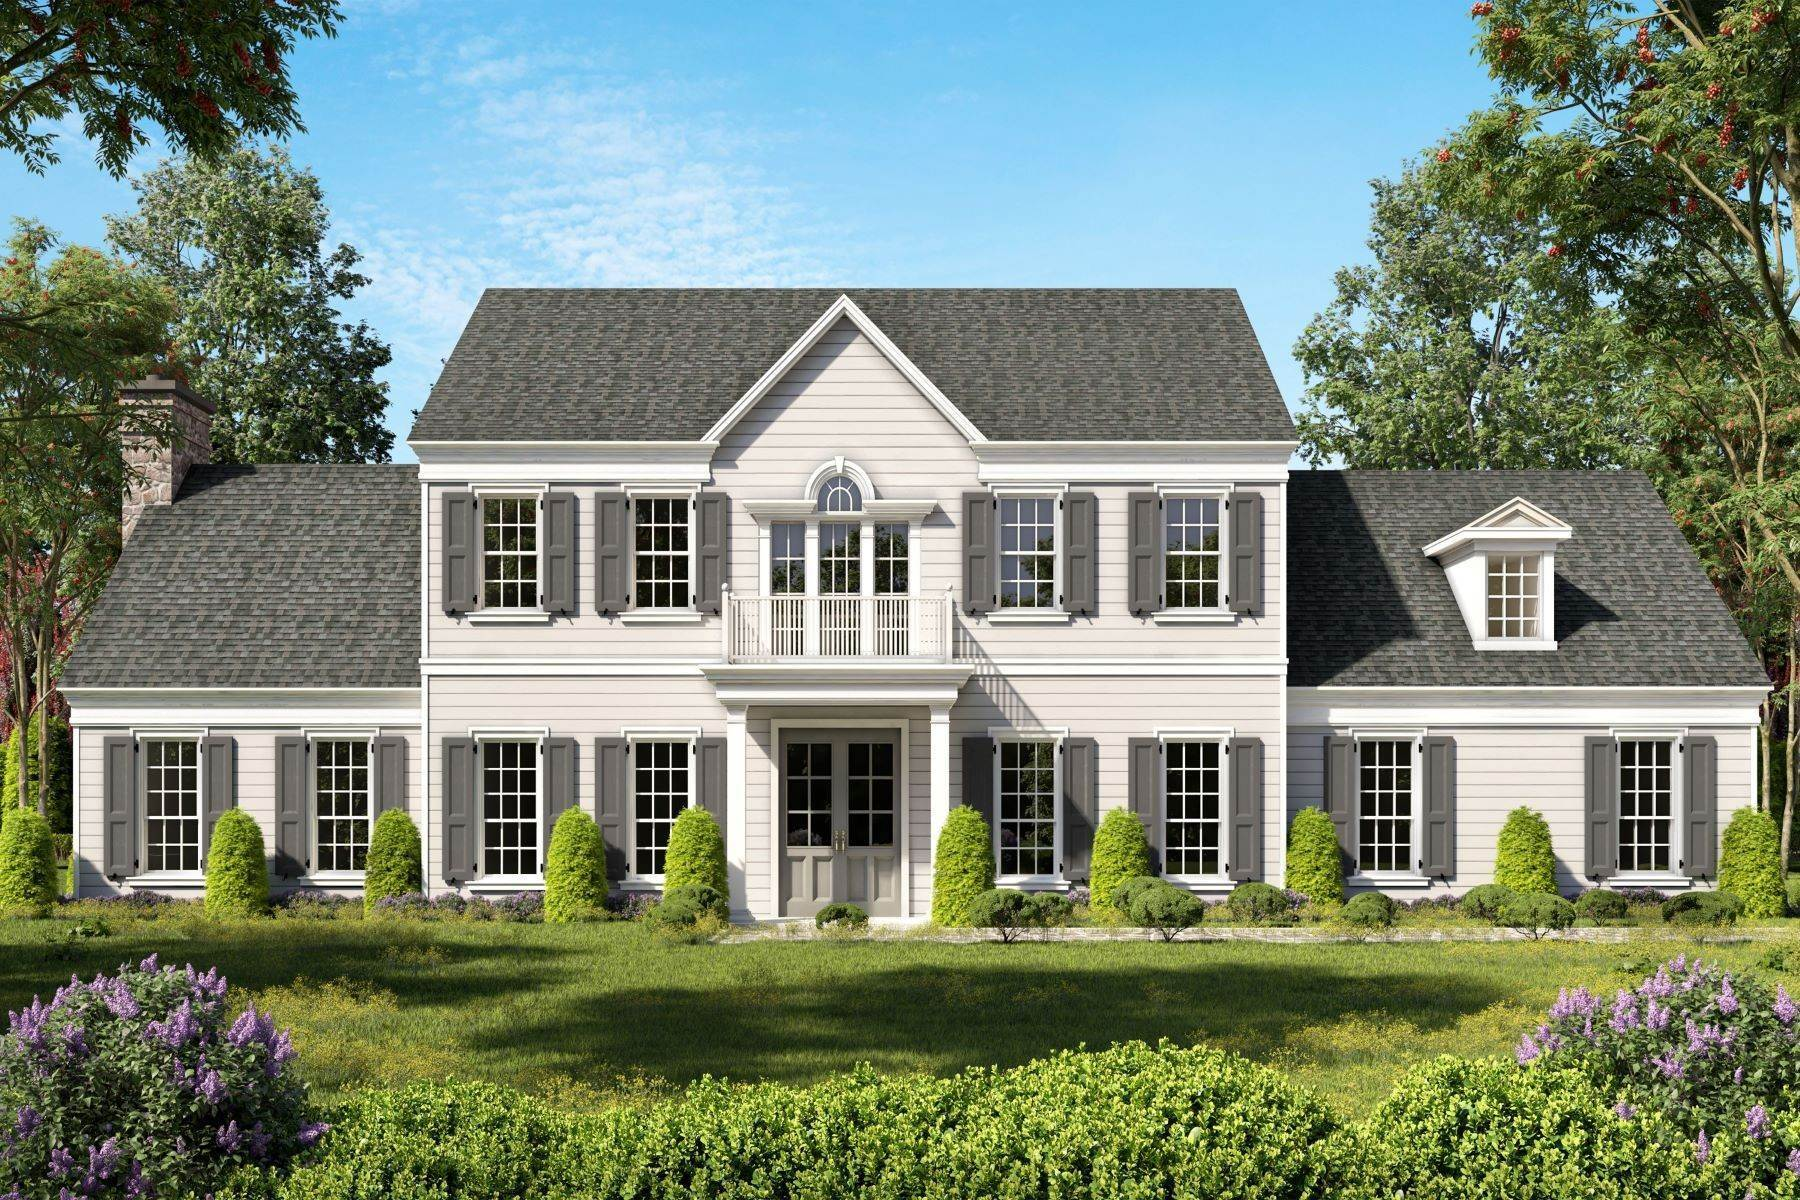 Single Family Homes for Sale at Pinnacle at Rolling Hills 14 SHULL FARM RD Erwinna, Pennsylvania 18920 United States